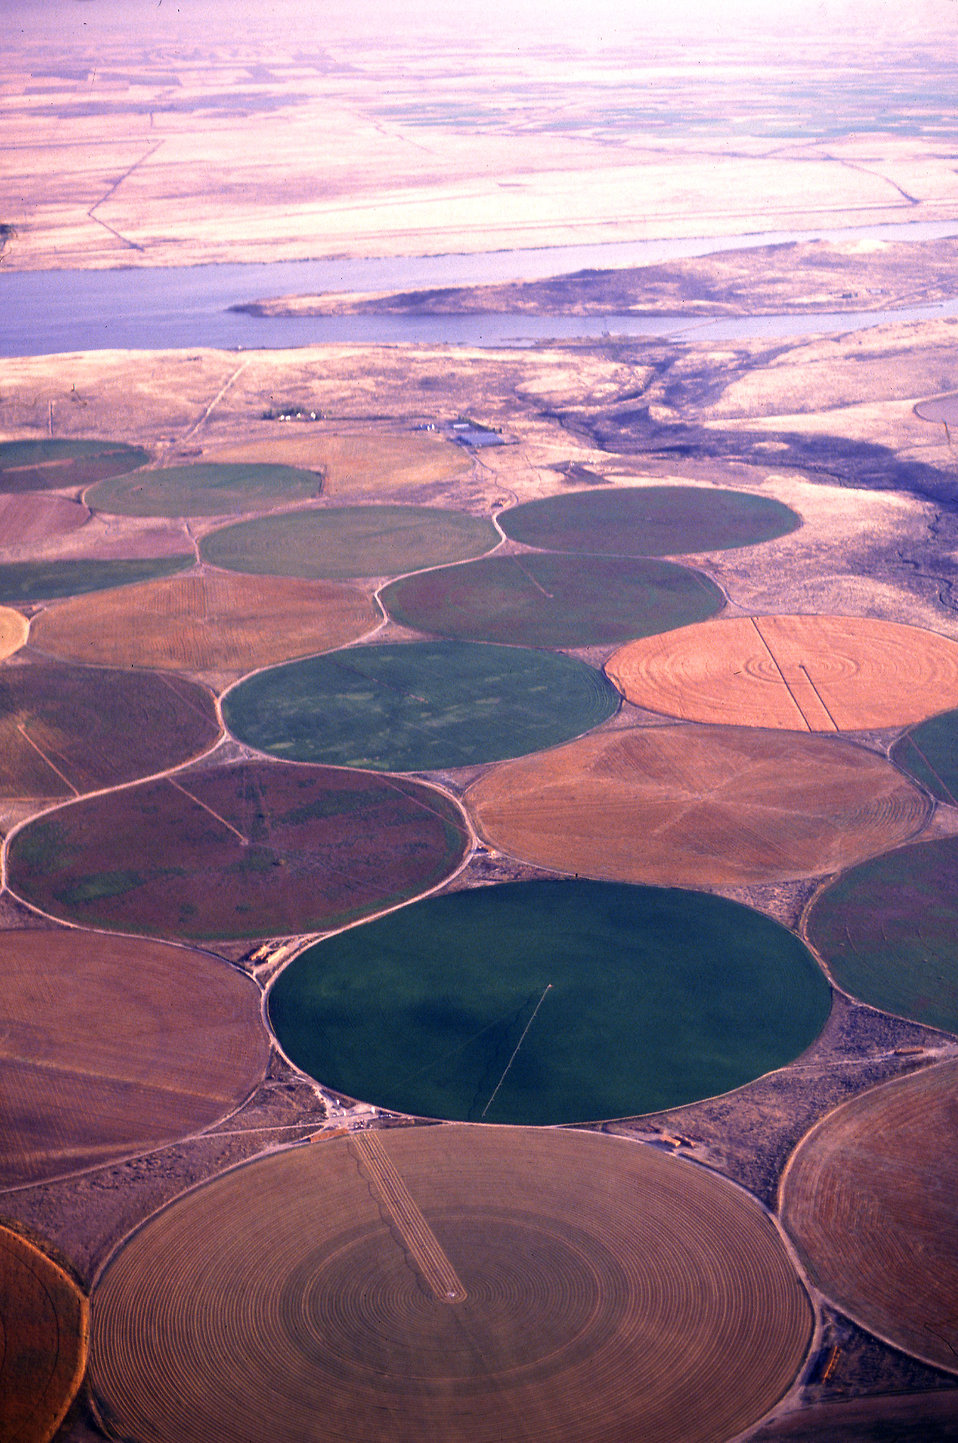 Aerial view of circular crop fields of wheat, alfalfa, potatoes and melons : Free Stock Photo